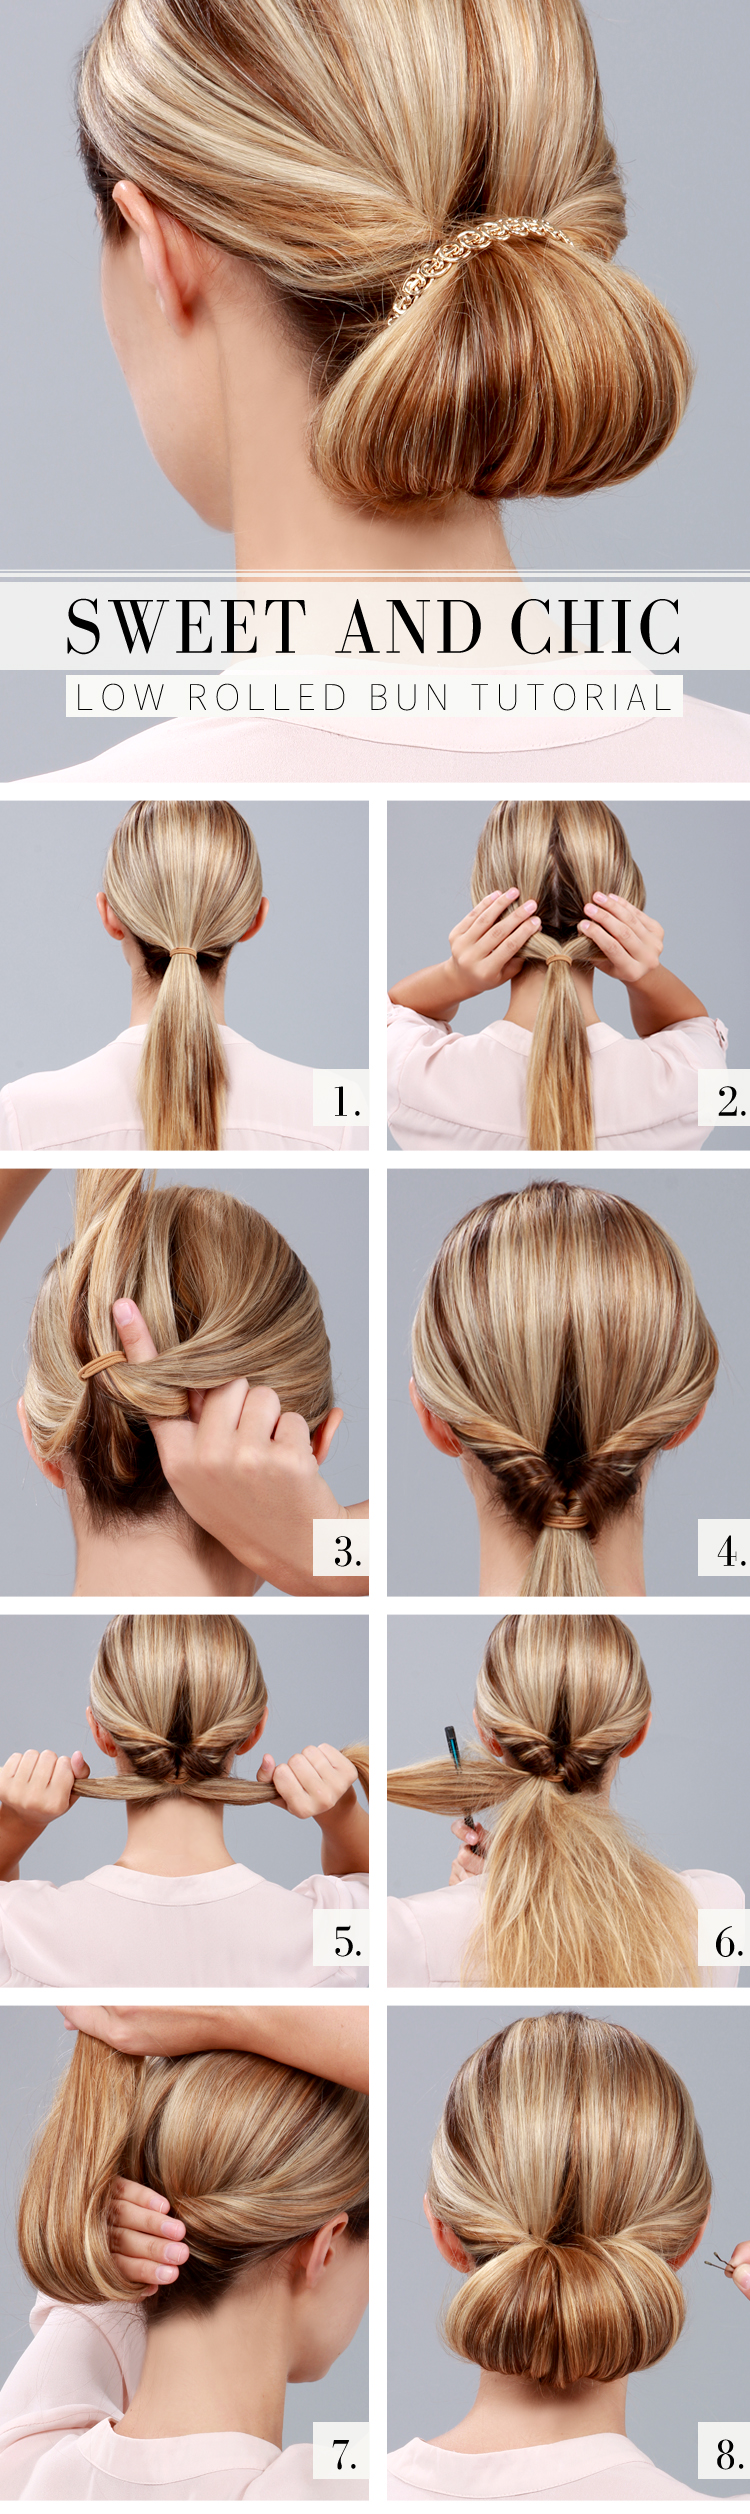 LuLu*s How-To: Chic Low Rolled Bun Tutorial! at LuLus.com!